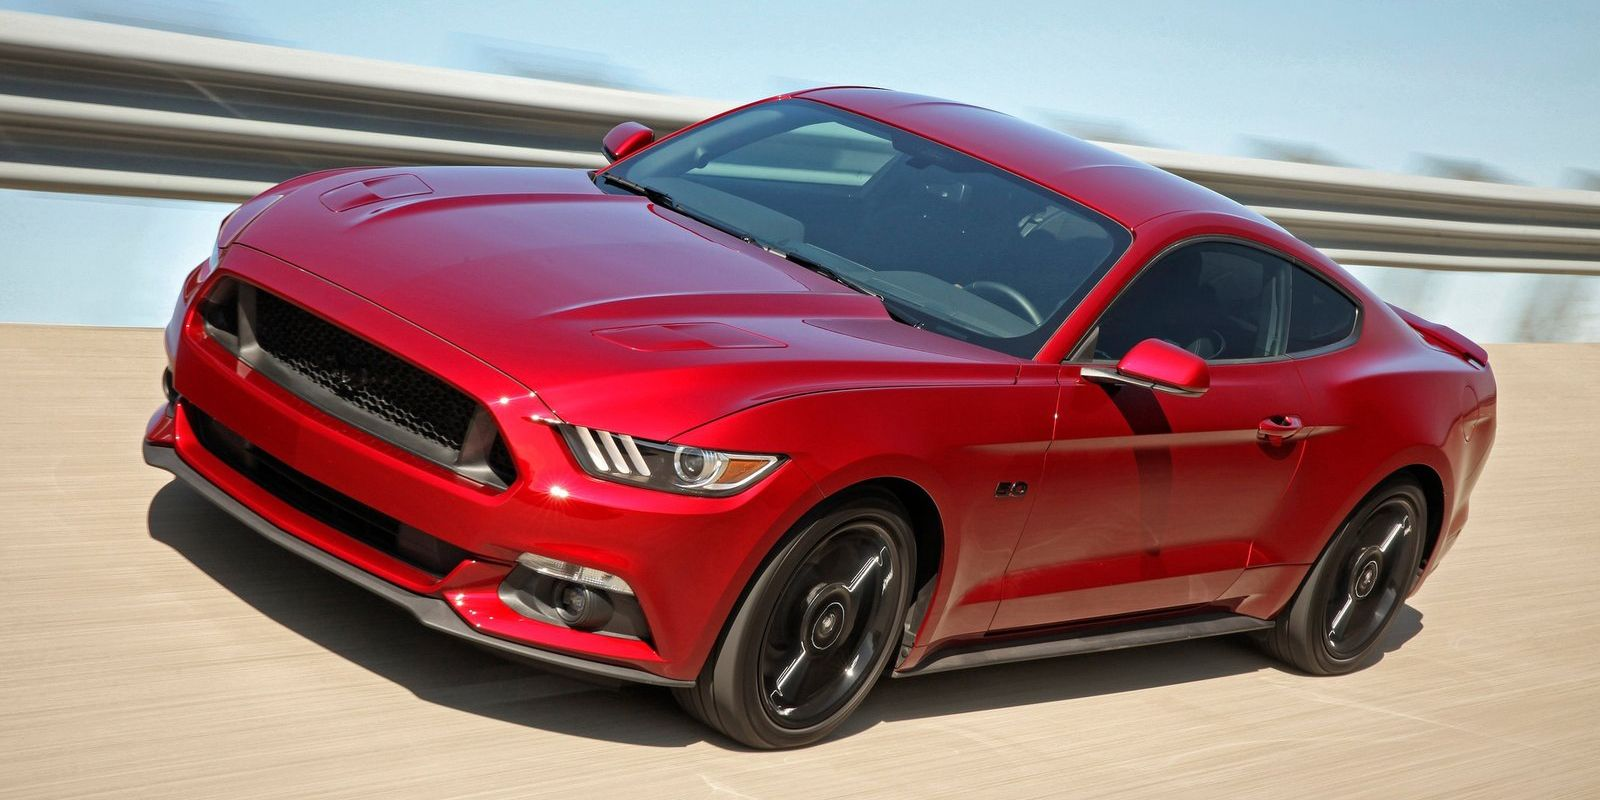 On the anniversary of renowned mustang model ford has launched its new pony the 2016 ford mustang ecoboost ford mustang 2016 is powered by a l